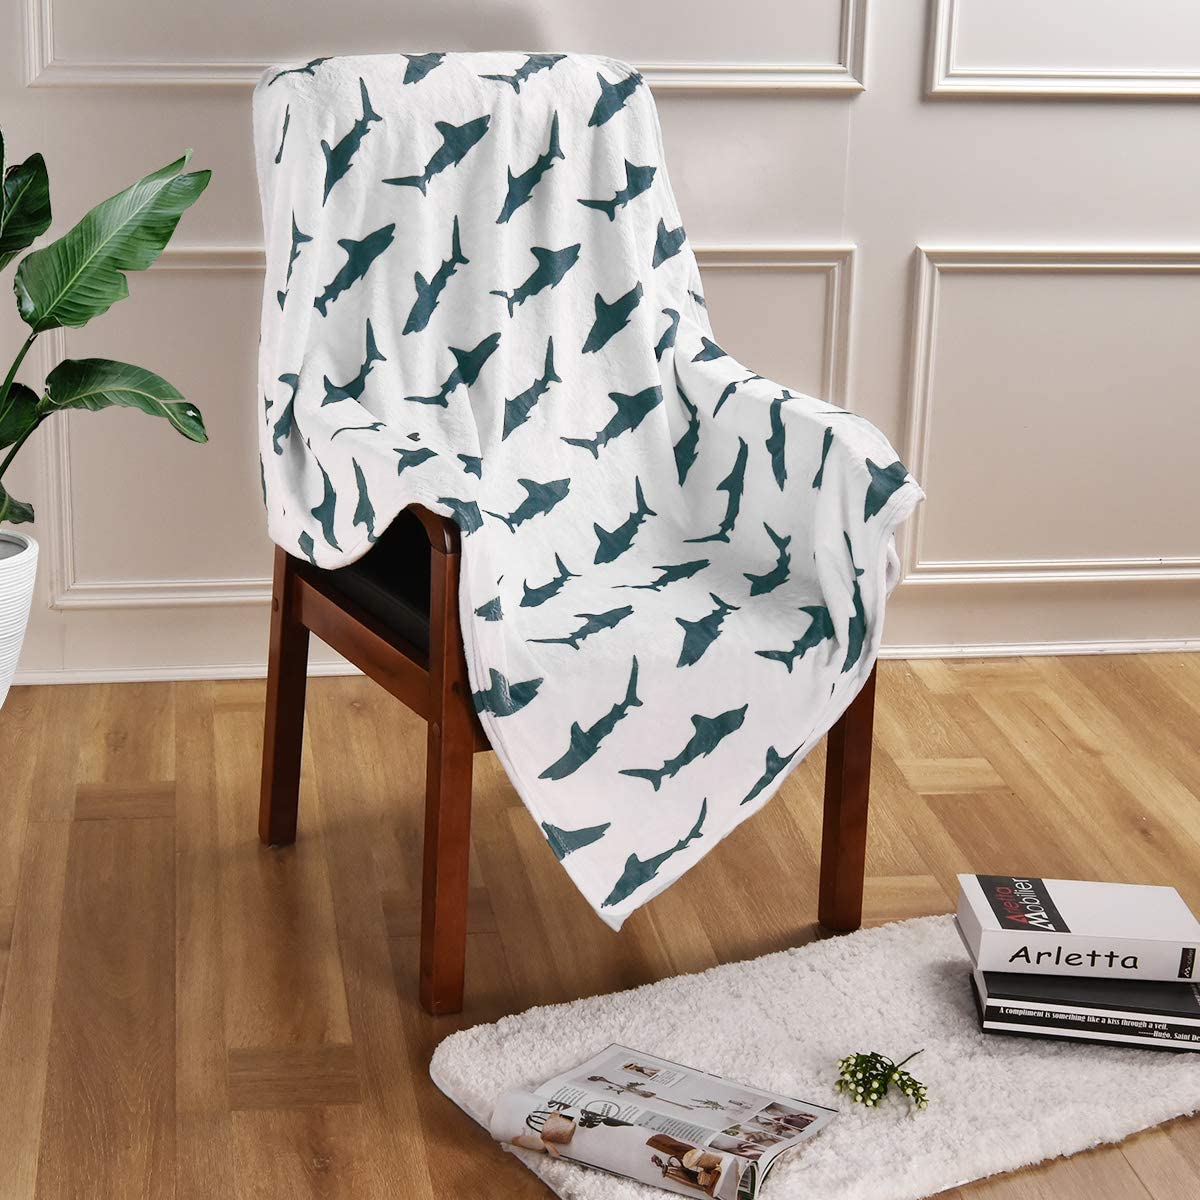 VERTKREA Sharks Silhouettes Throw Blankets, Flannel Throw Blanket, Cozy Soft Blanket for Couch, Bed, Chair, 40 x 50 Inches